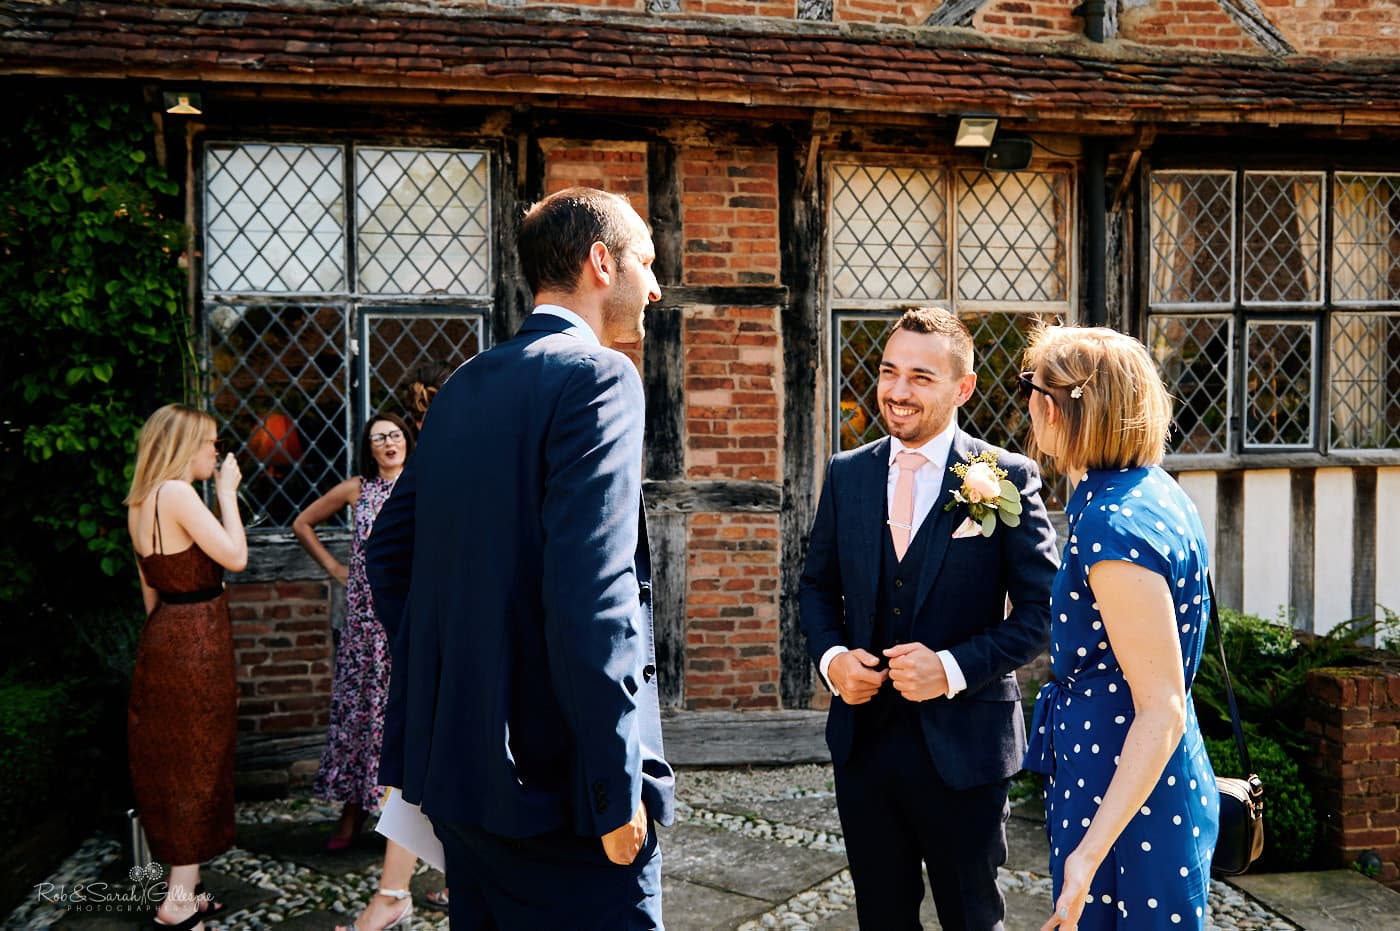 Groom greets wedding guests as they arrive